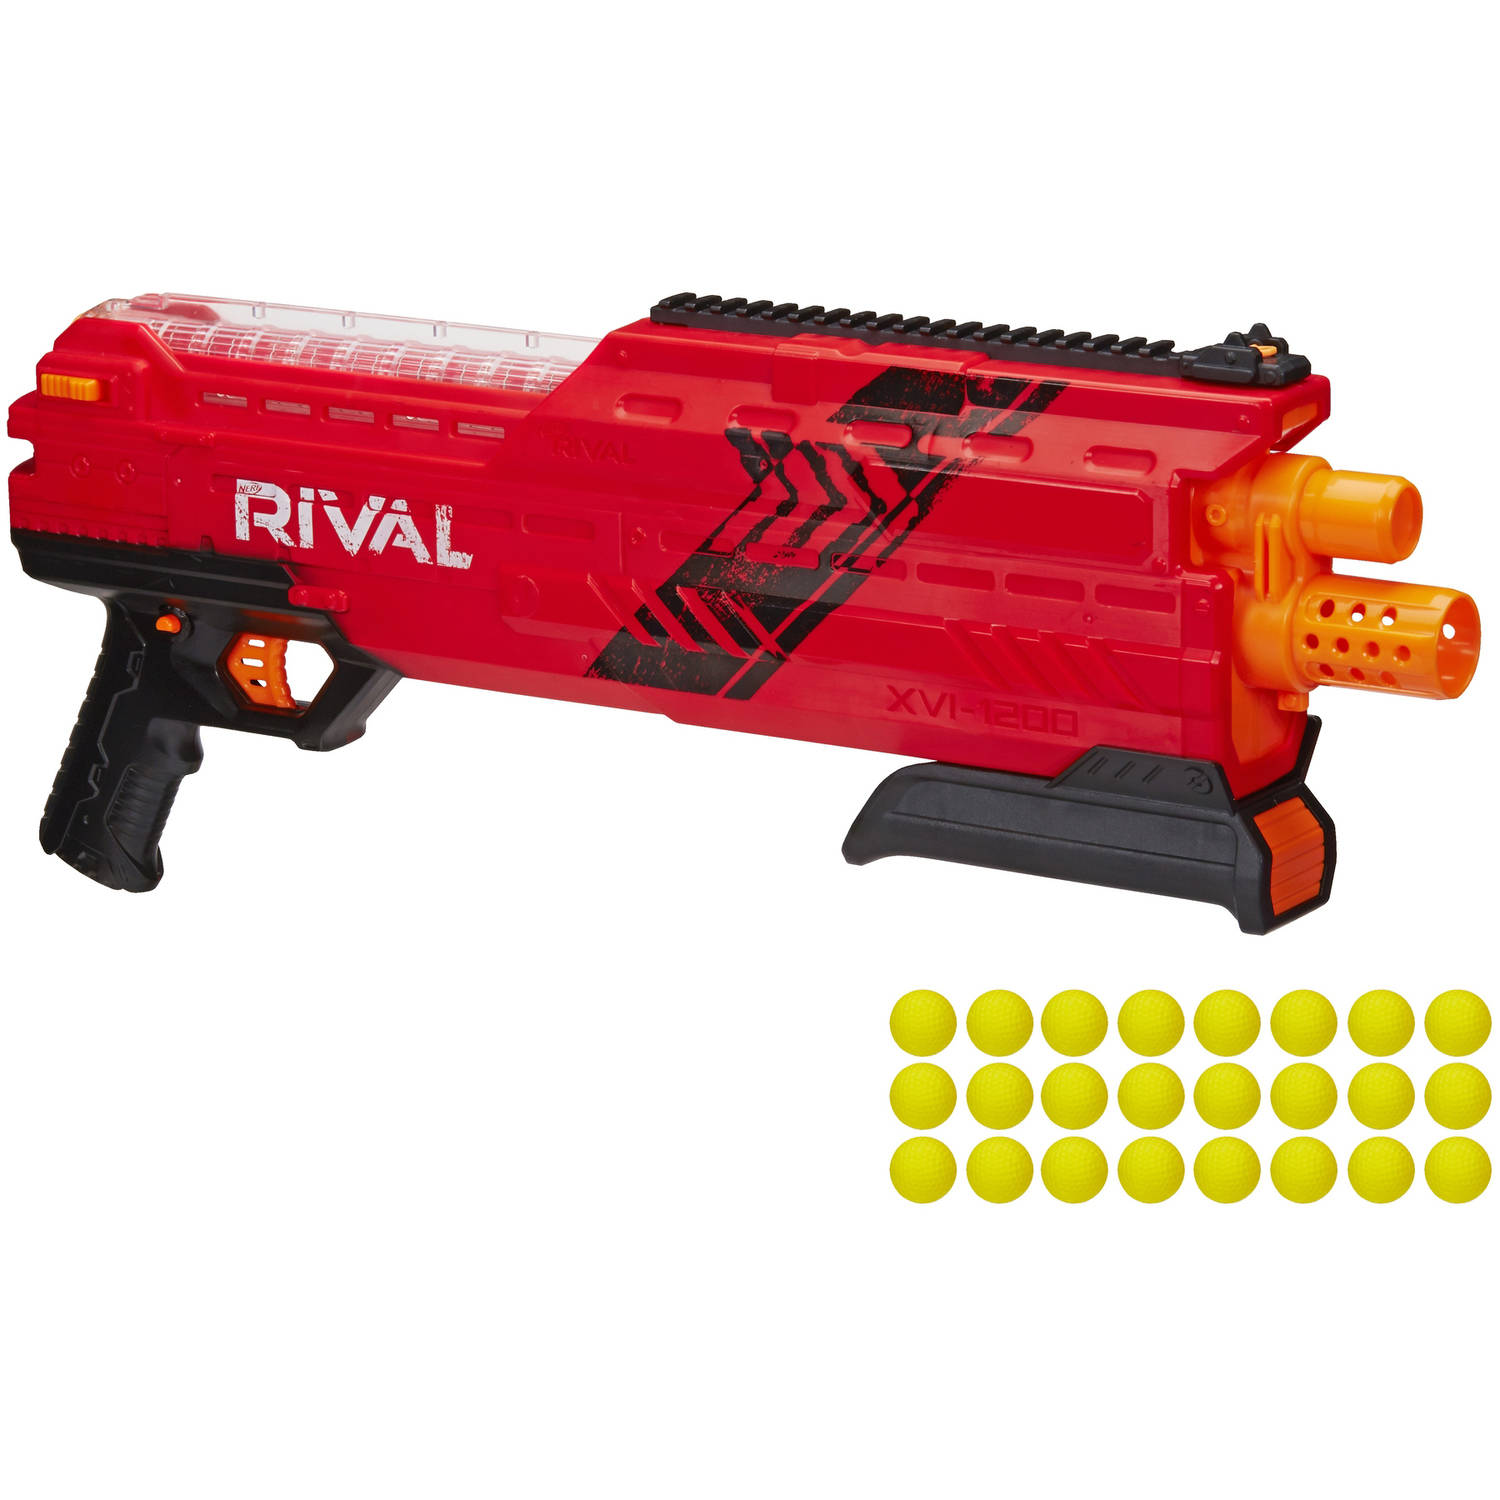 Nerf Rival Atlas XVI-1200 Blaster (Red) by Hasbro